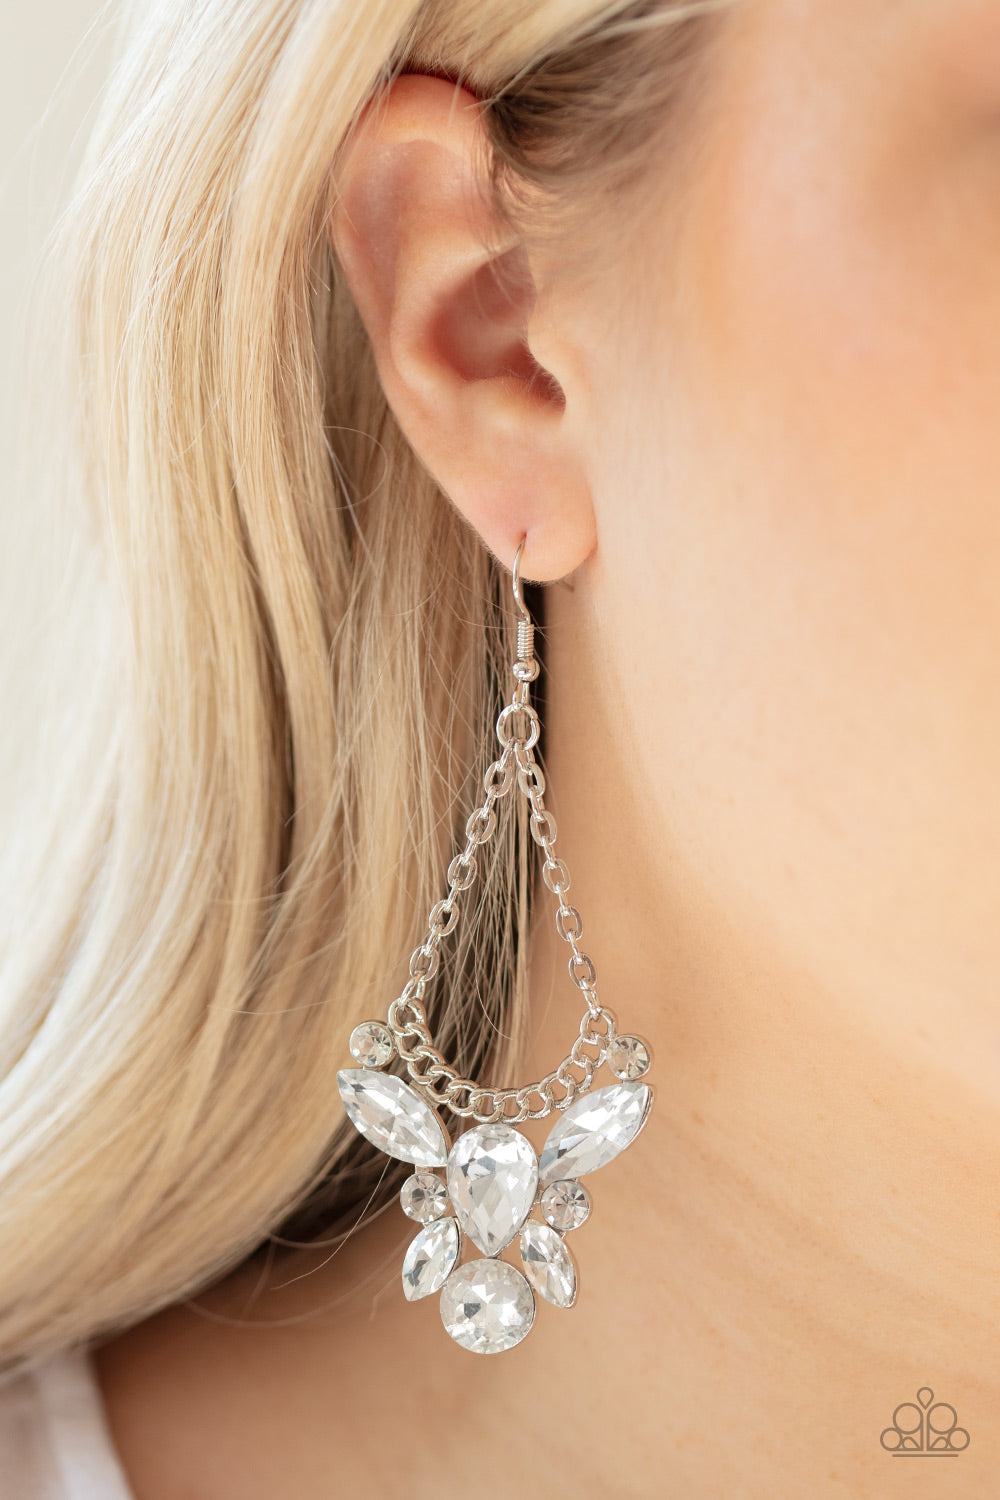 Paparazzi Jewelry & Accessories Blilng Bouquets teardrop marquise white rhinestone earrings. Bling By Titia